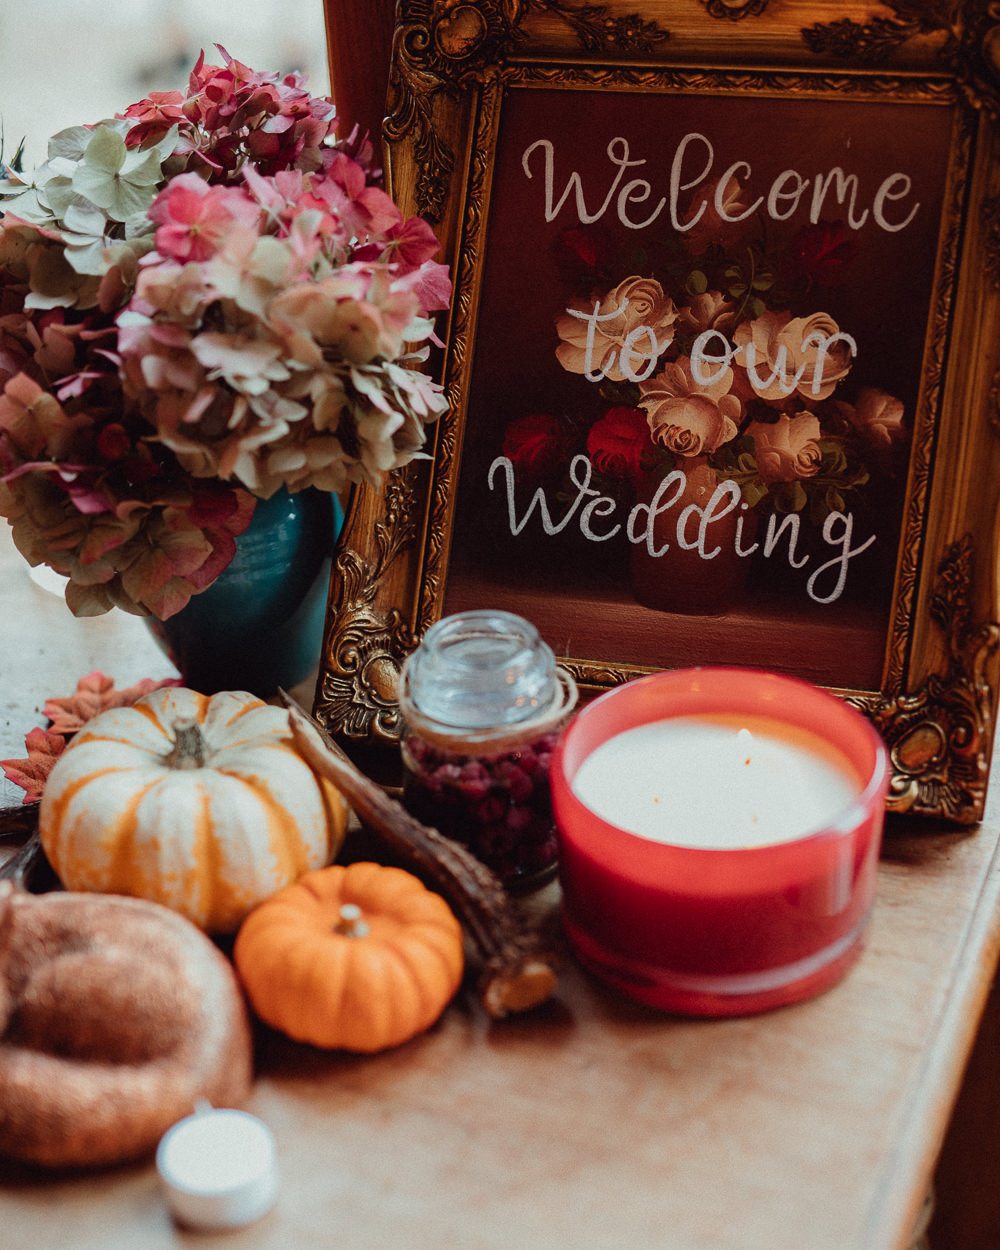 Floral Calligraphy Welcome Sign Candles Pumpkins Autumn Decor Oxleaze Barn Wedding Emily and Steve Photography